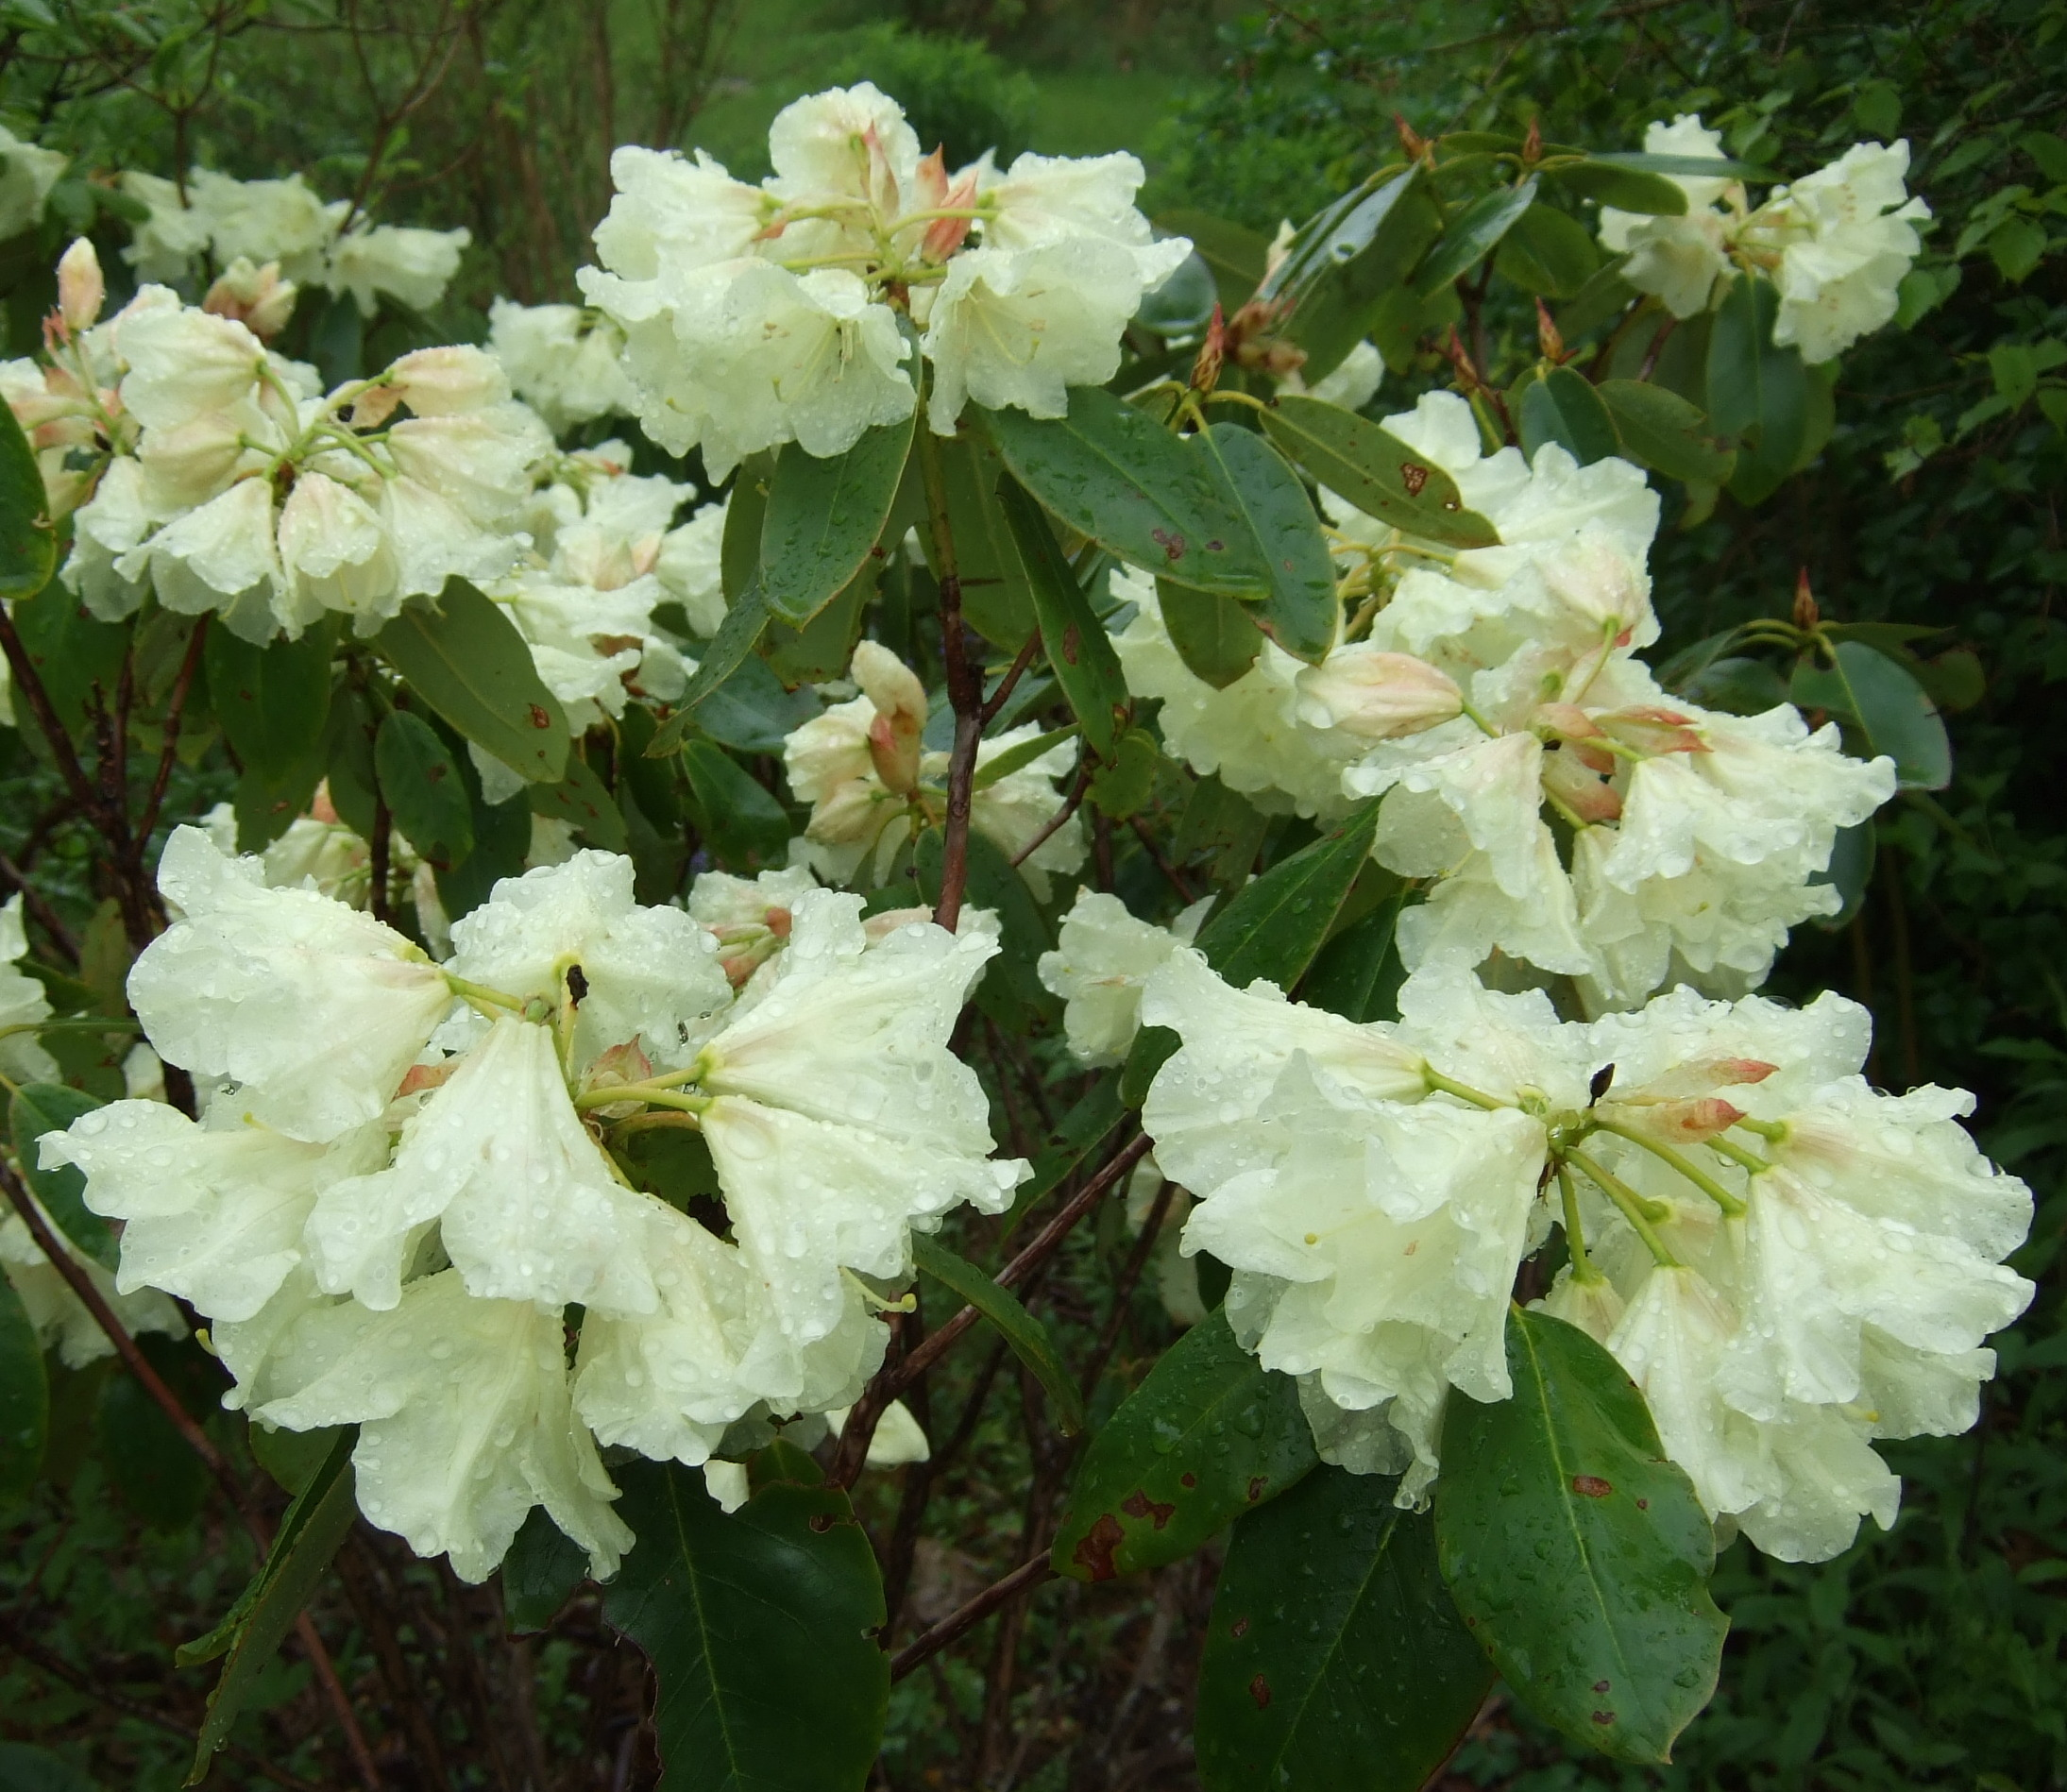 Rhododendron in a light rain shower